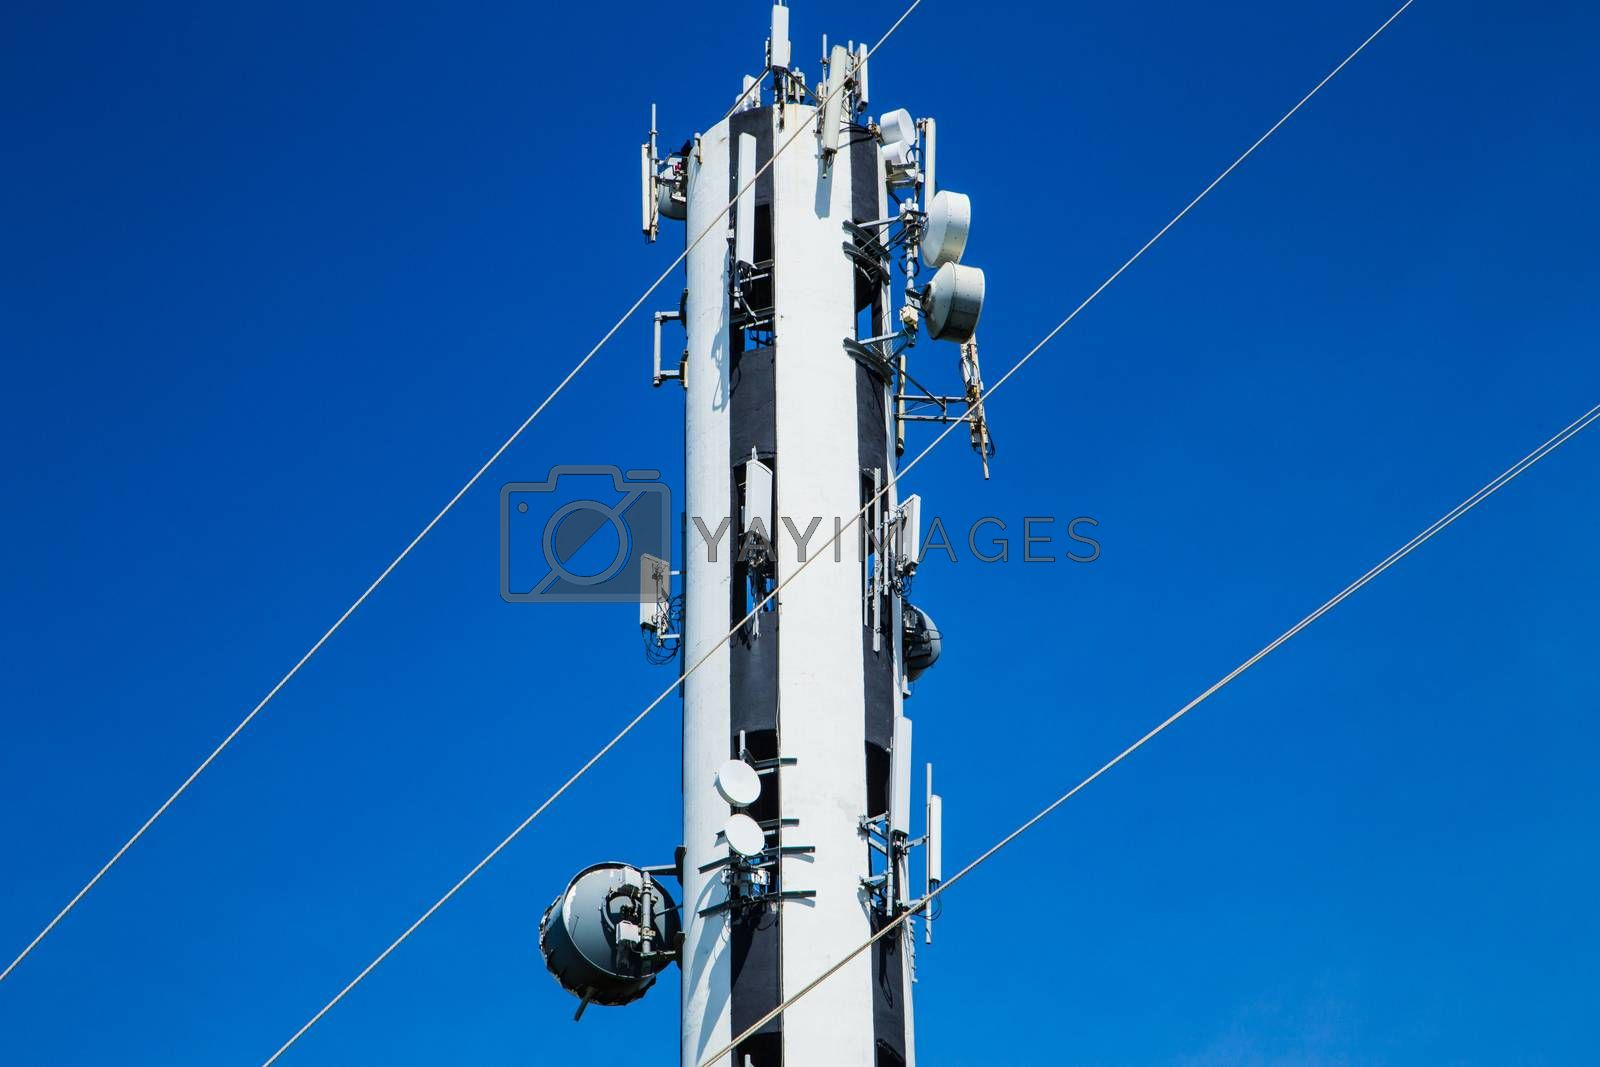 Antenna Communication and wire